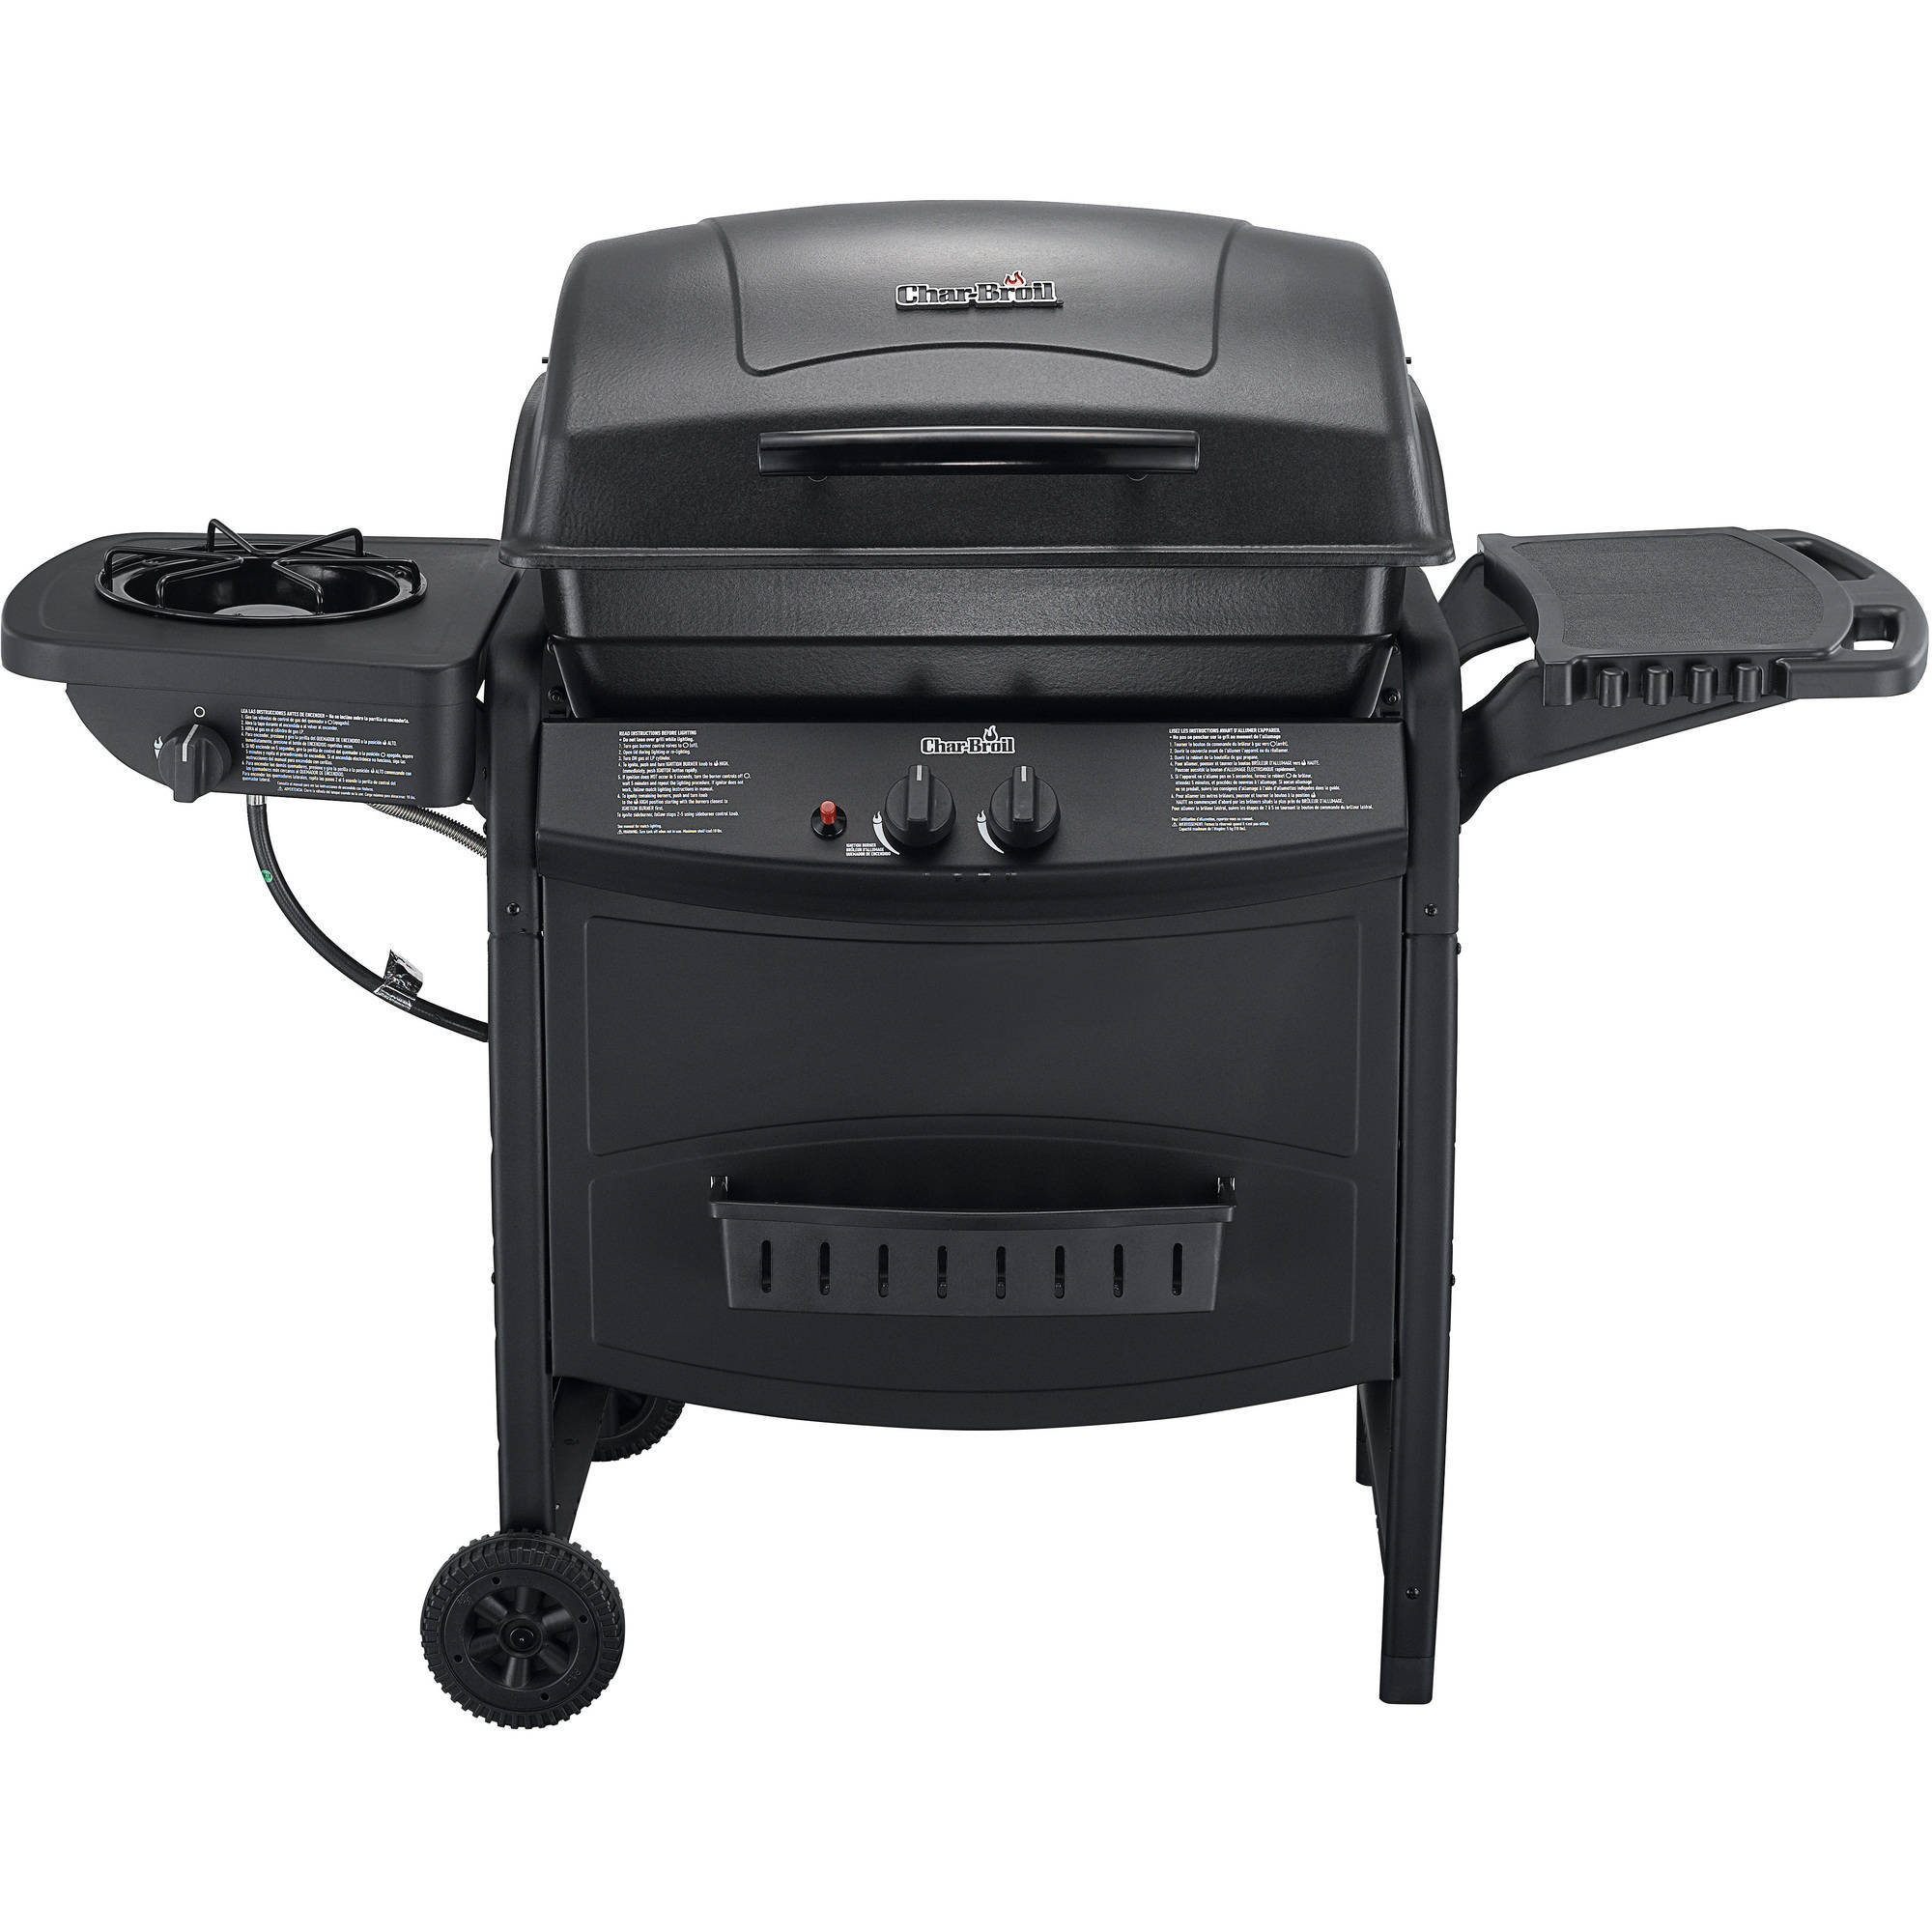 Char-Broil 2-Burner Gas Grill with Side Burner